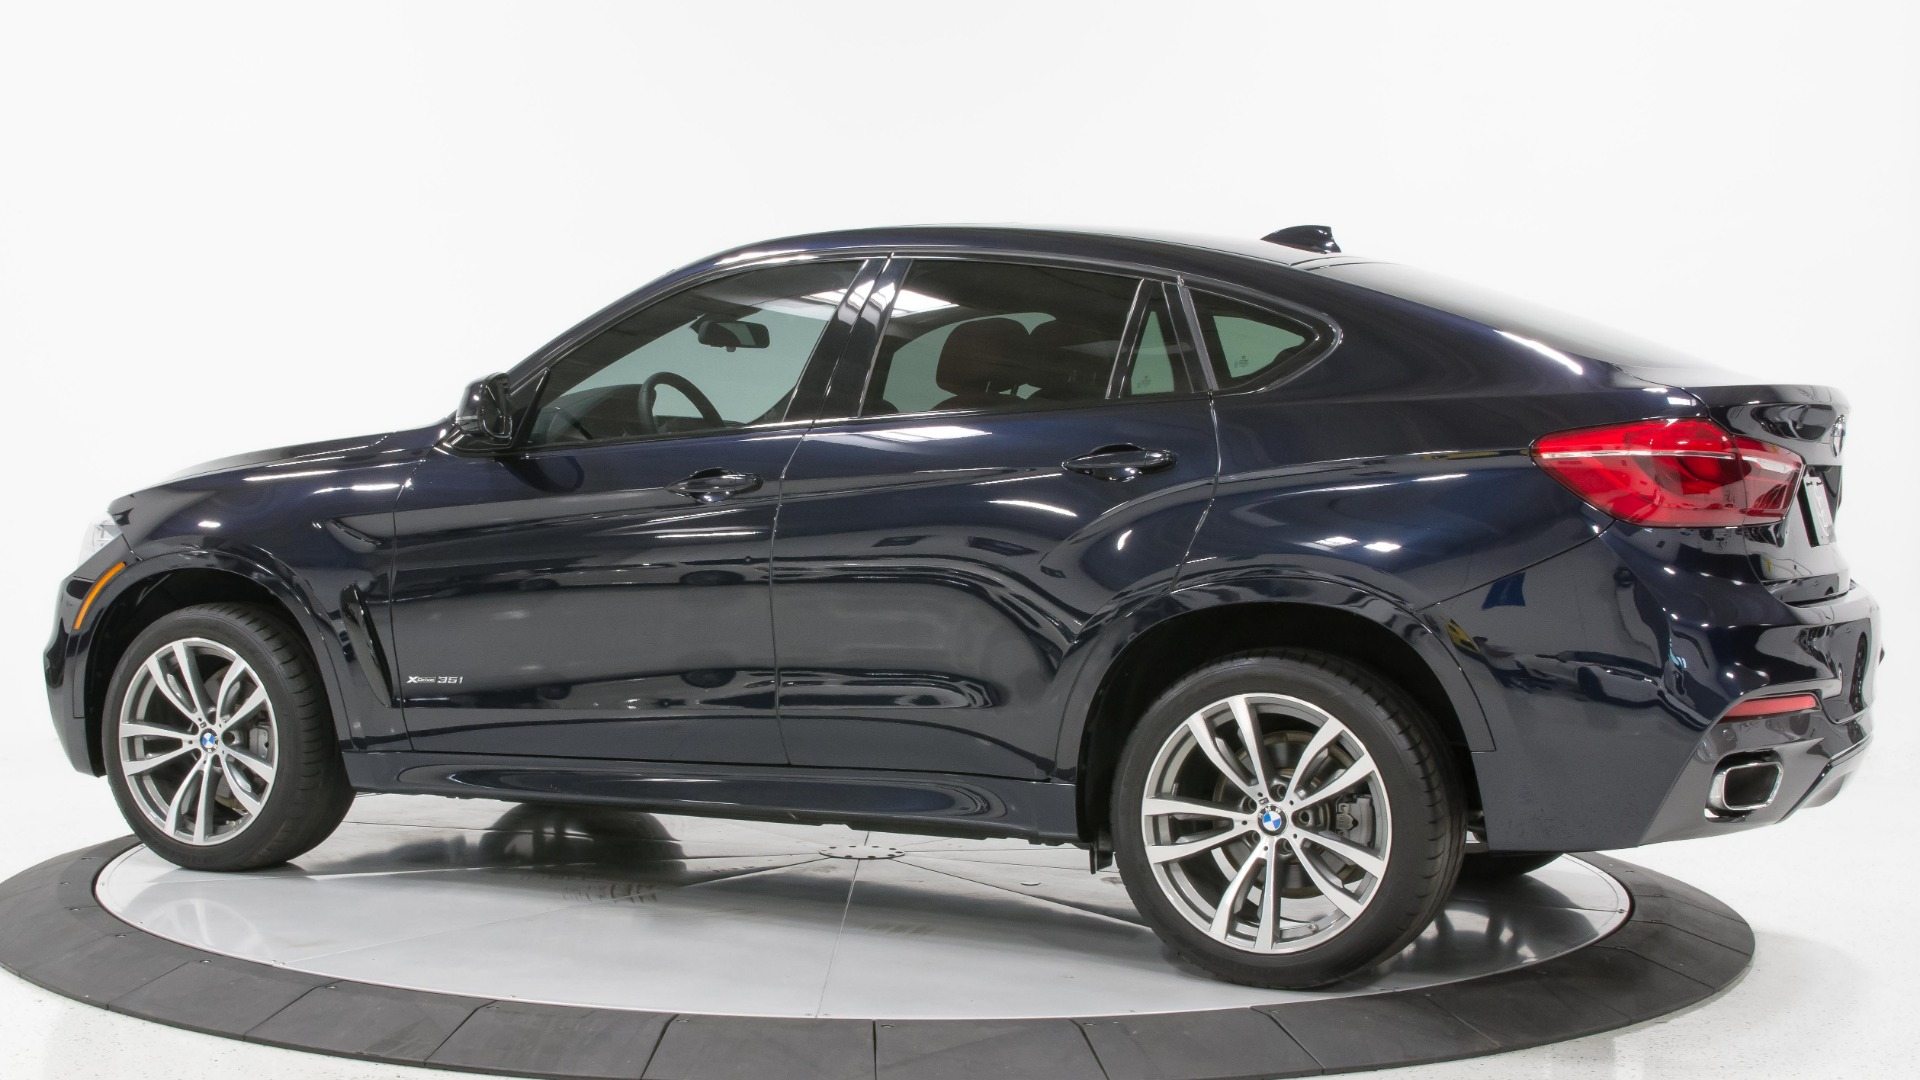 2016 Bmw X6 Xdrive35i M Sport Stock 22557 For Sale Near